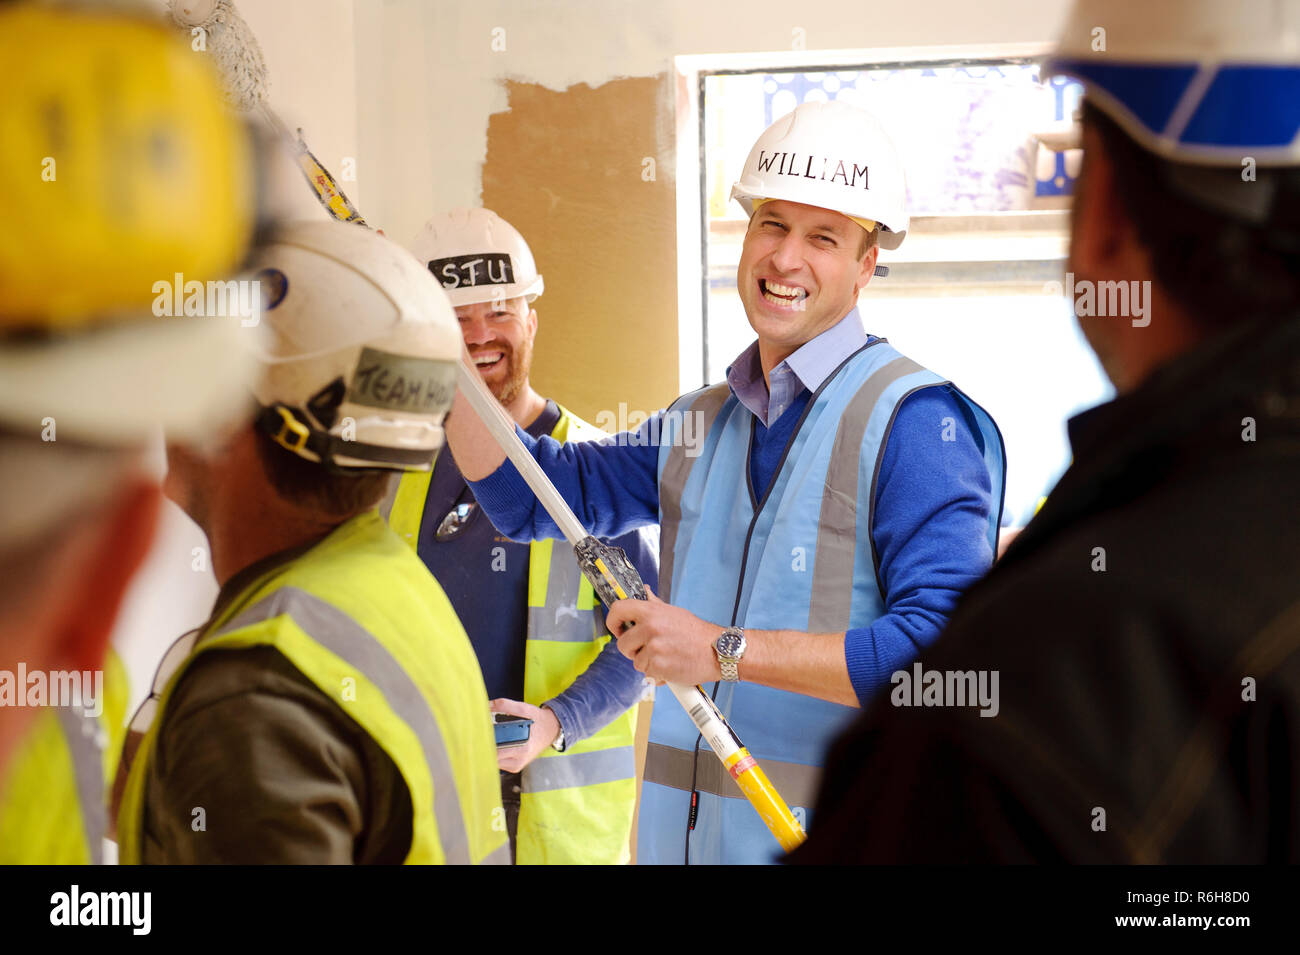 Prince William, Duke of Cambridge, pictured meeting tradesmen on the BBC's DIY SOS project in Manchester. - Stock Image